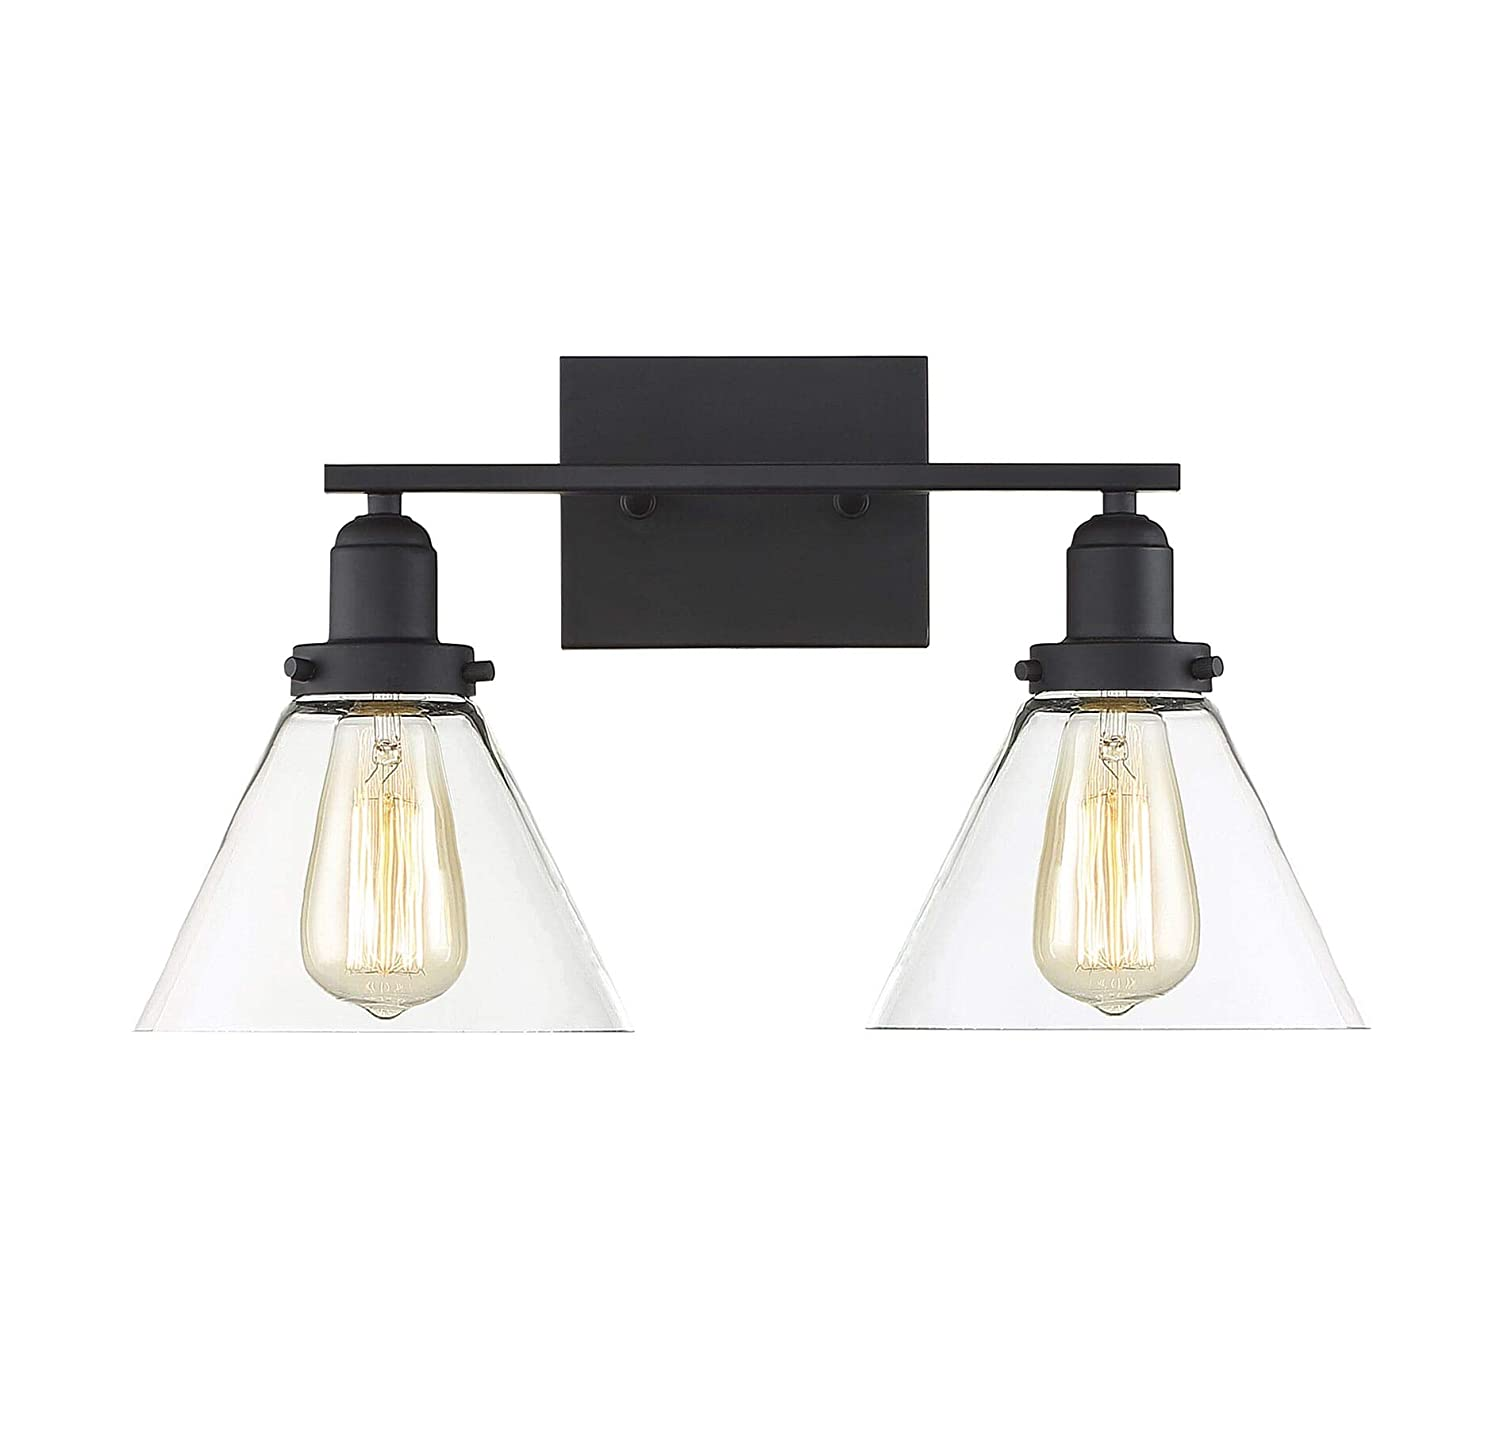 Savoy House 8-9130-2-BK Drake 2-Light Bathroom Vanity Light in a Black Finish with Clear Glass 18 W x 10 H